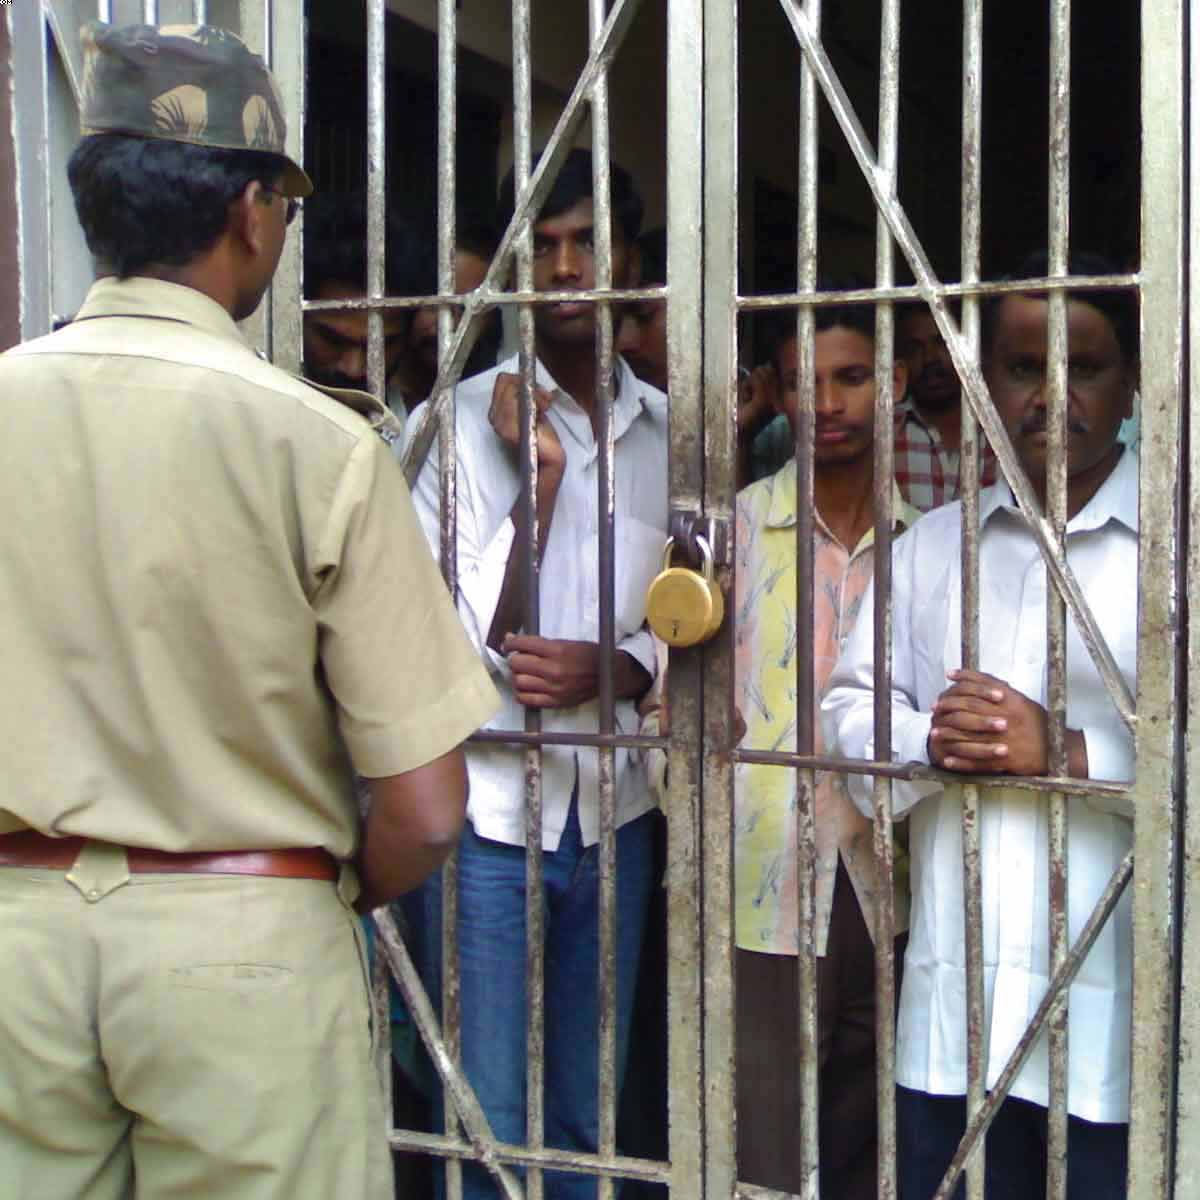 As a regular practice Hindu activists accuse Christians of forced conversions so they are arrested.